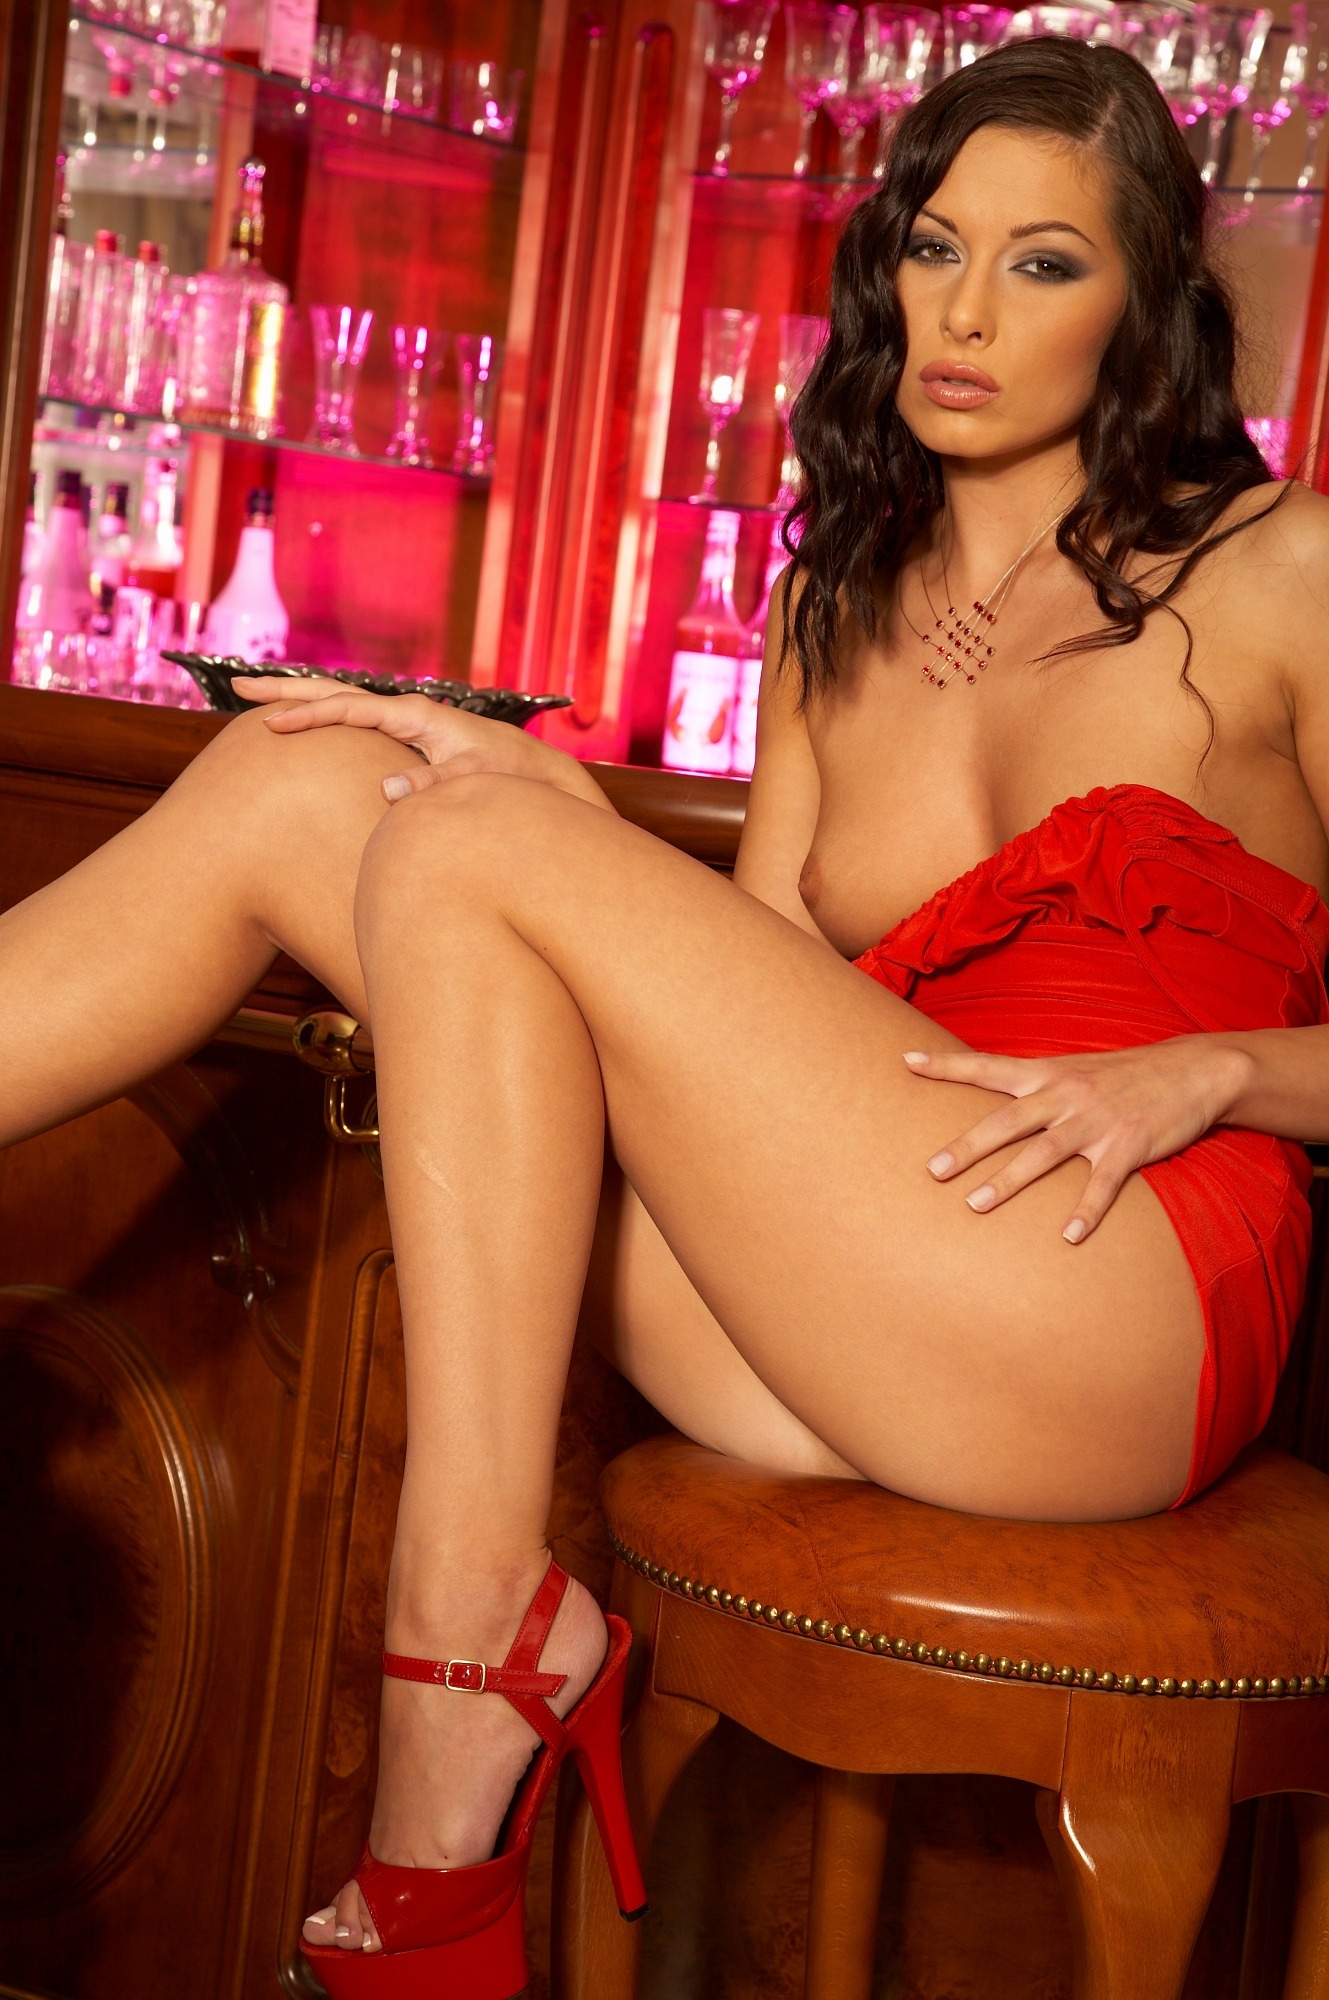 Evelyn Lory Sexy In A Red Dress And Hot Panties - Mobile -6600